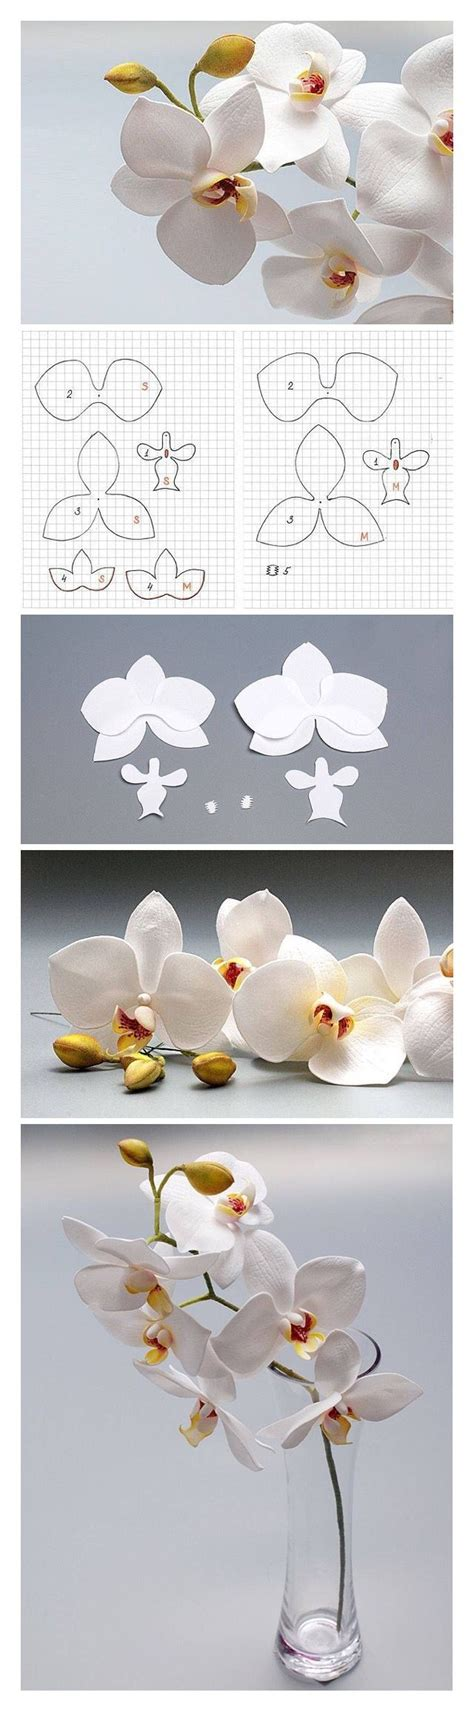 felt orchid pattern pattern orchid by oton franca oliveira pinteres